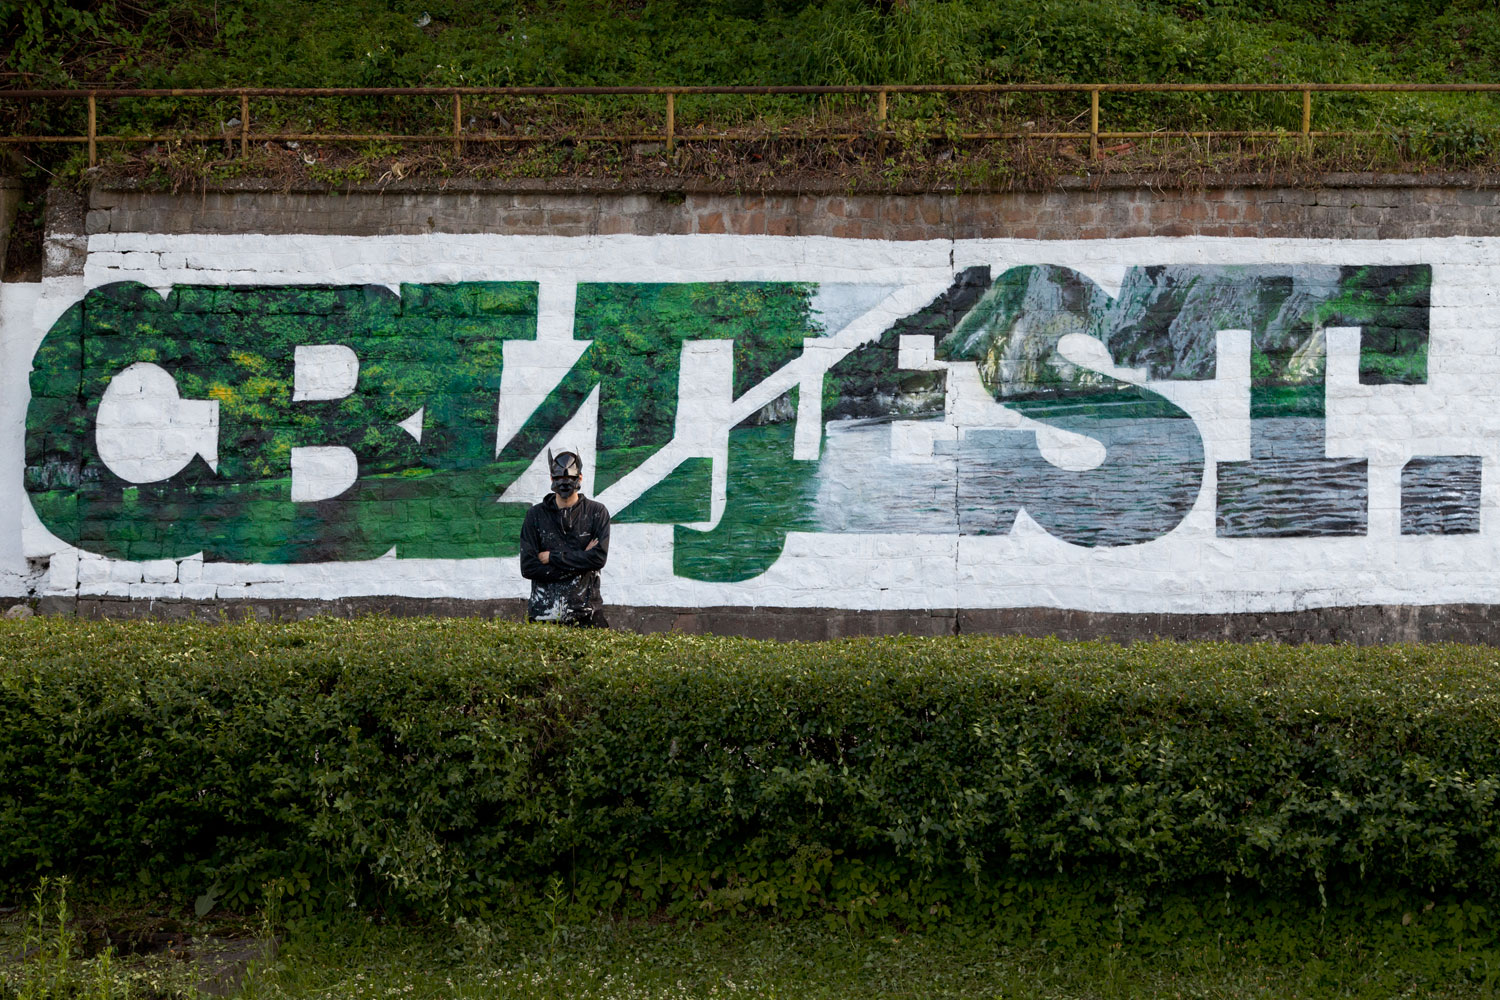 ''CBИJEST'' Spray and exterior paint on wall 4 x 22 m Srebrenica 2017